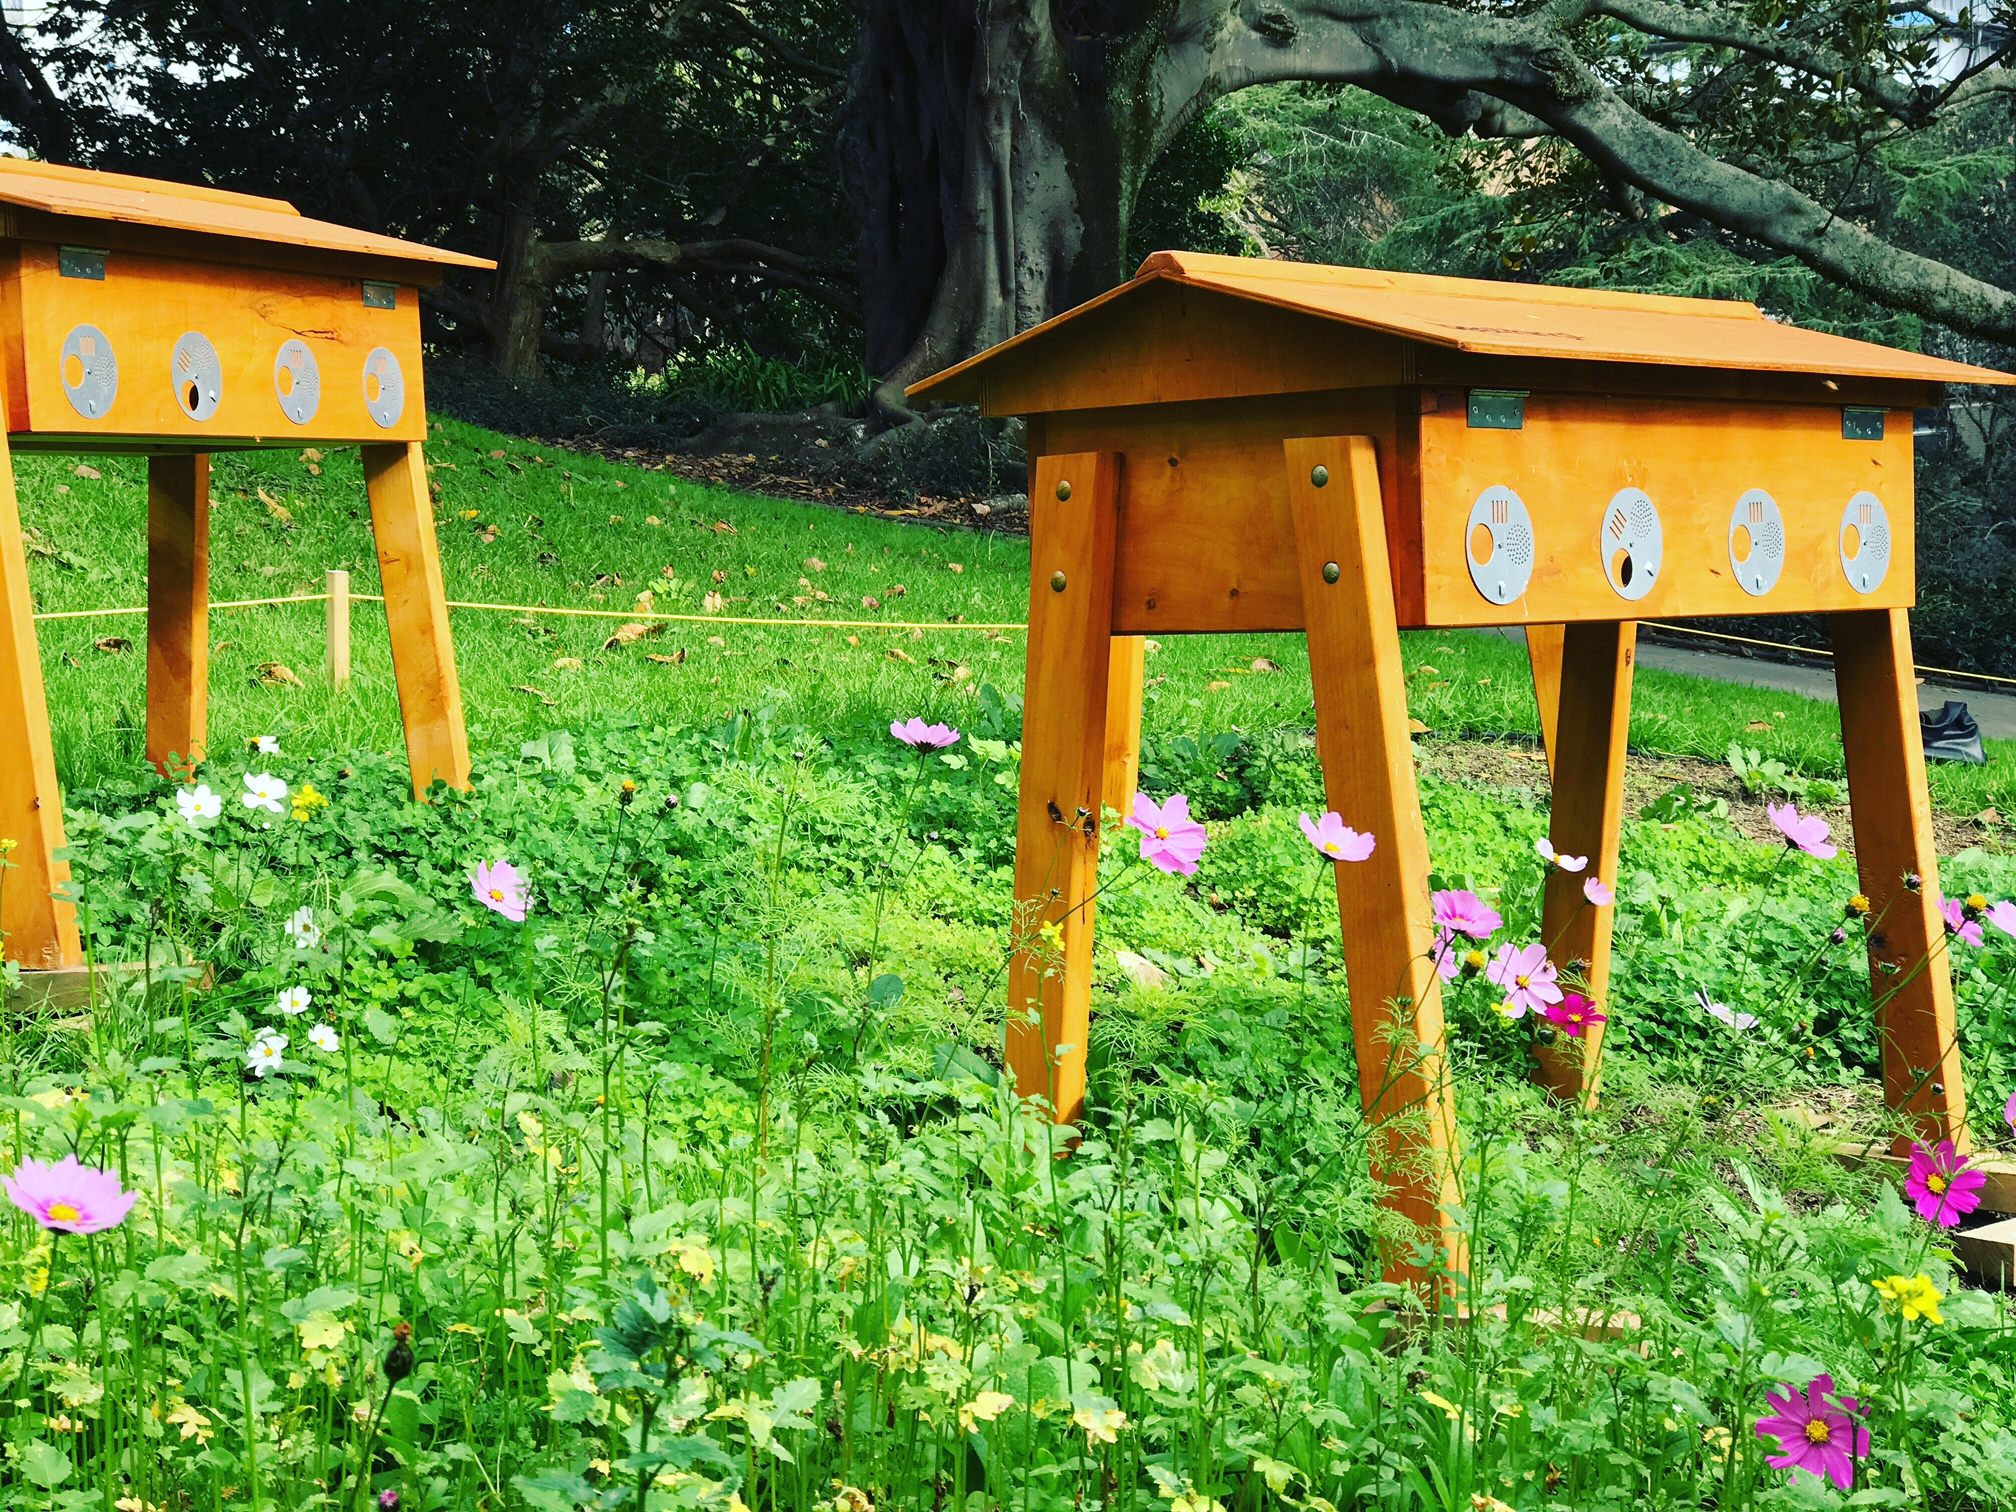 Bees in Parks -